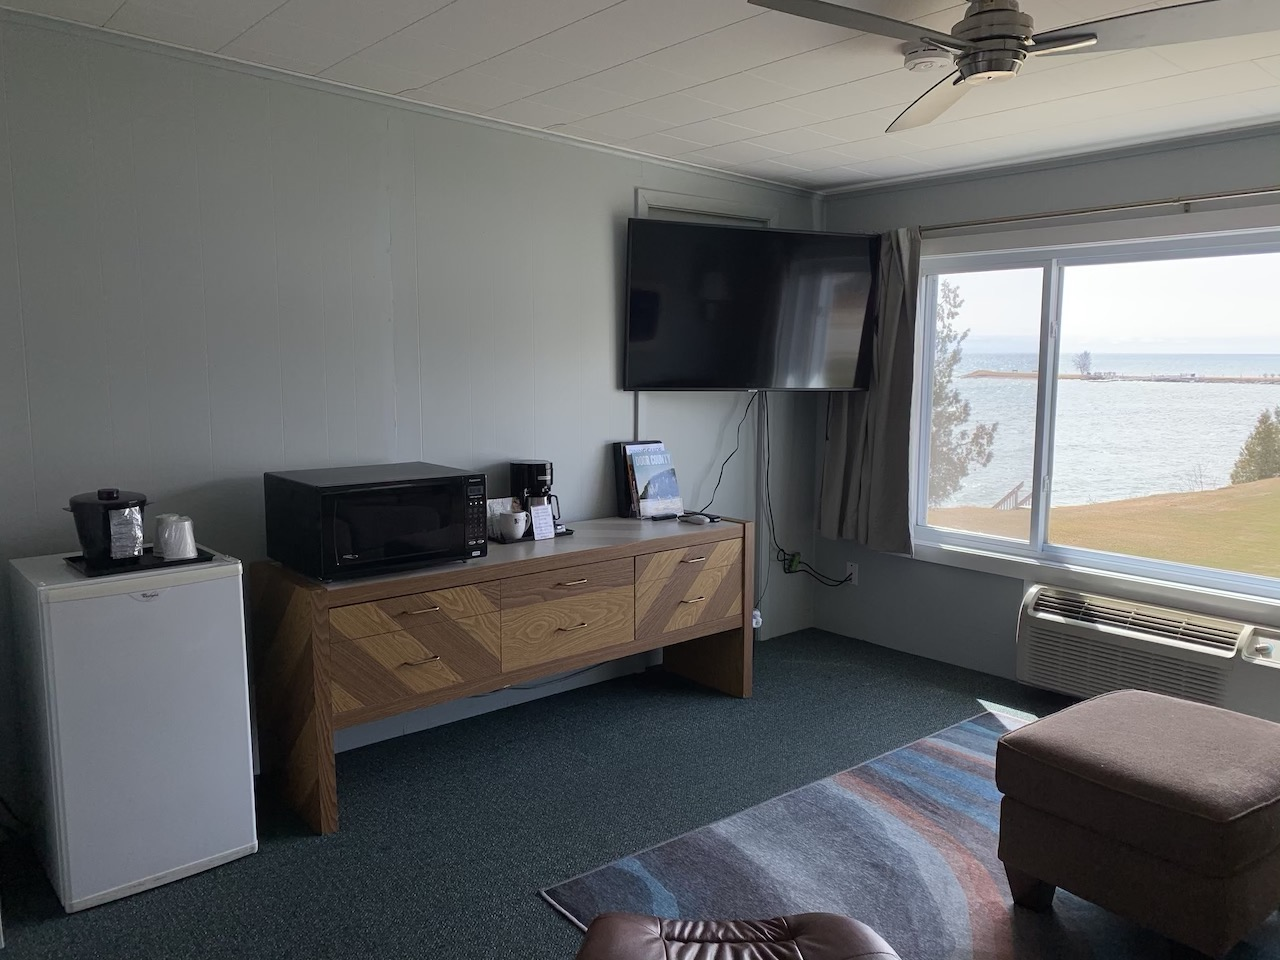 Room 207 Amenities mini fridge, coffee maker, Large Flat screen TV, Microwave and charging dock